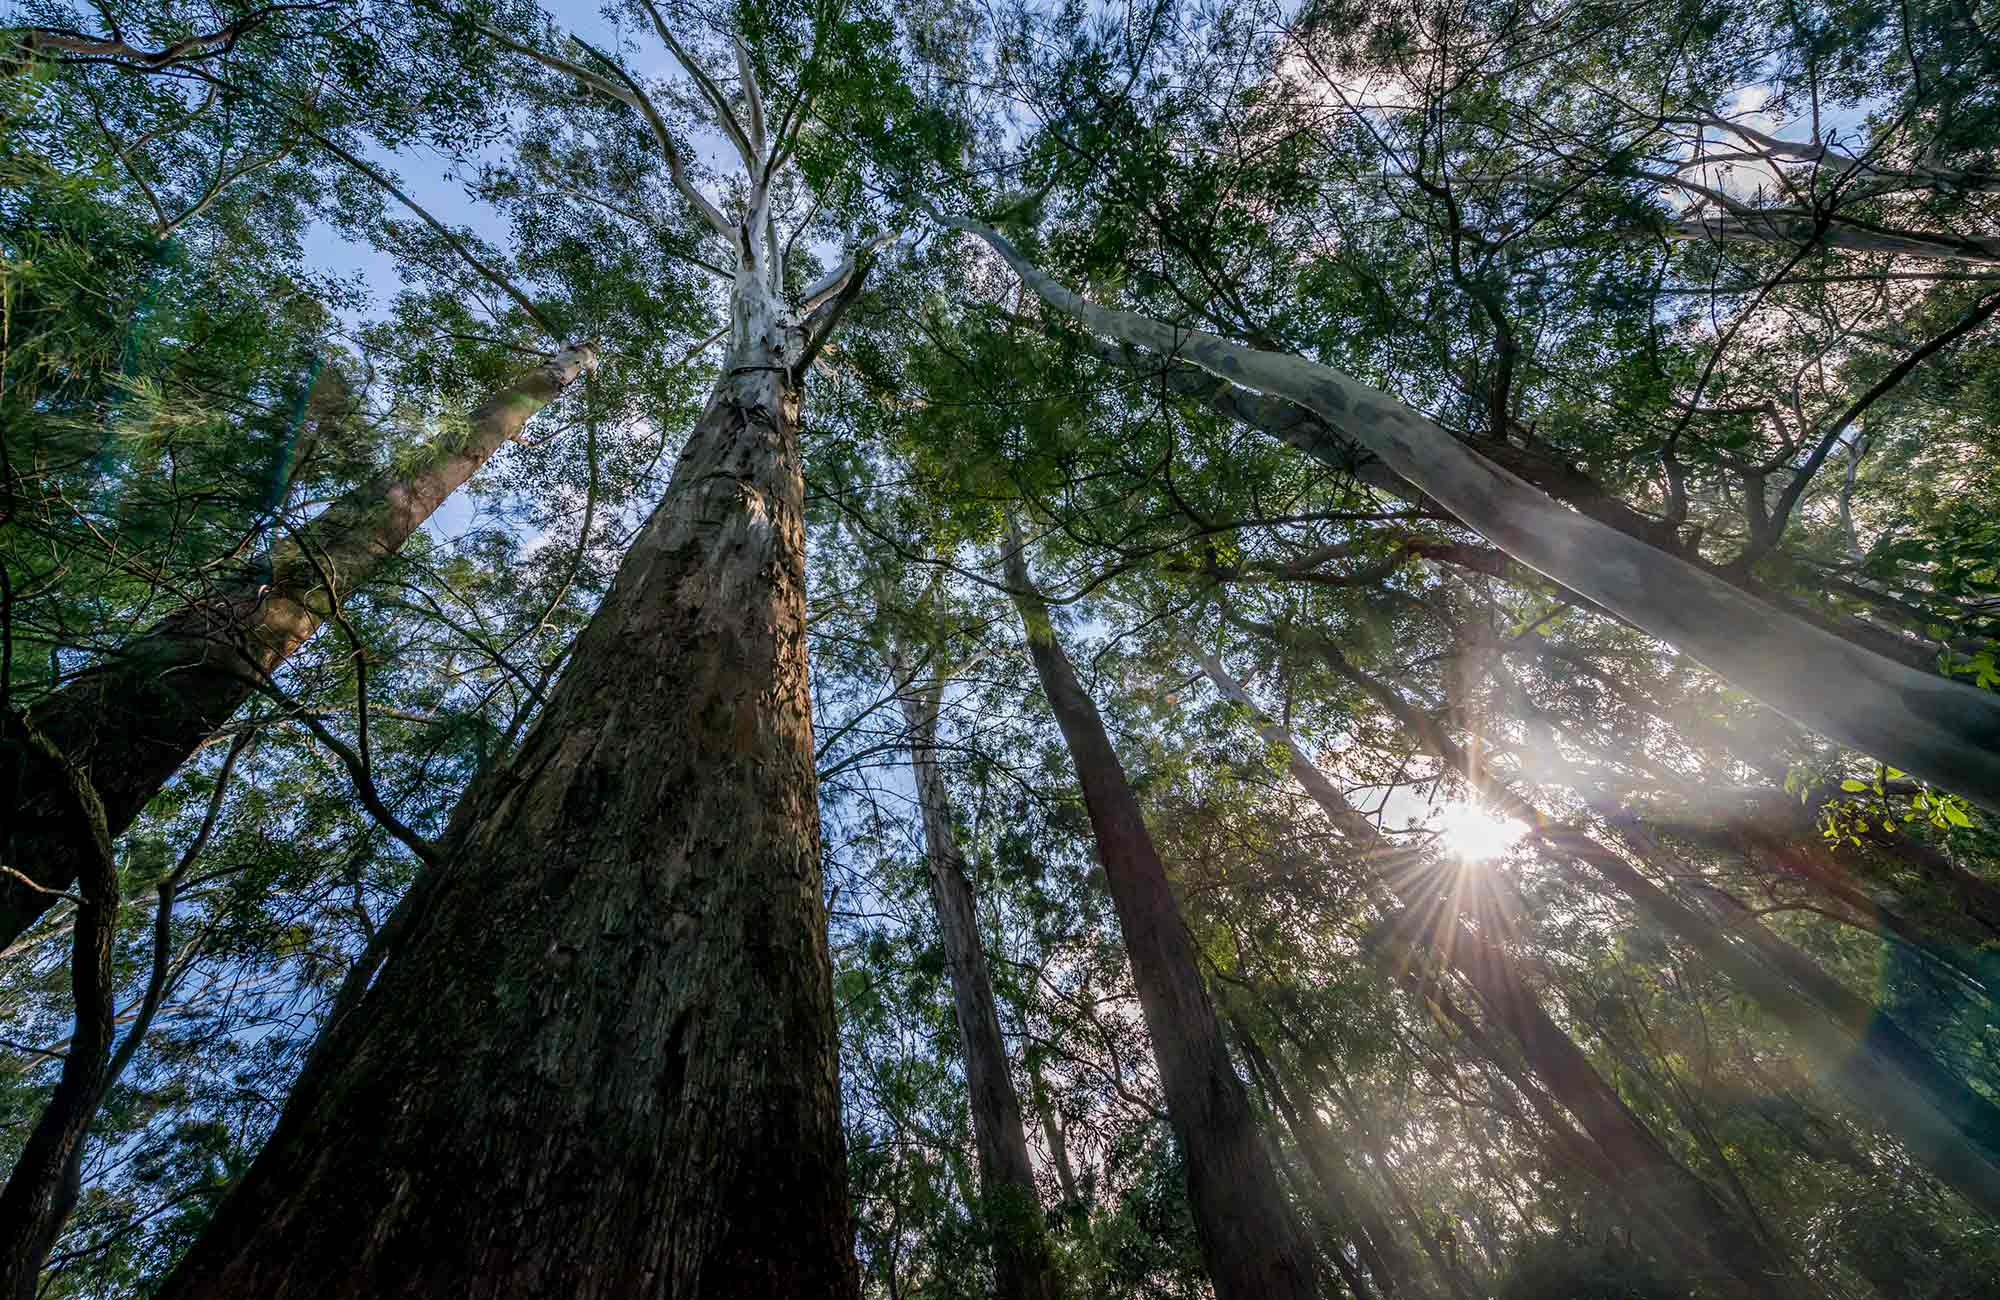 Towering trees, Dalrymple-Hay Nature Reserve. Photo: John Spencer